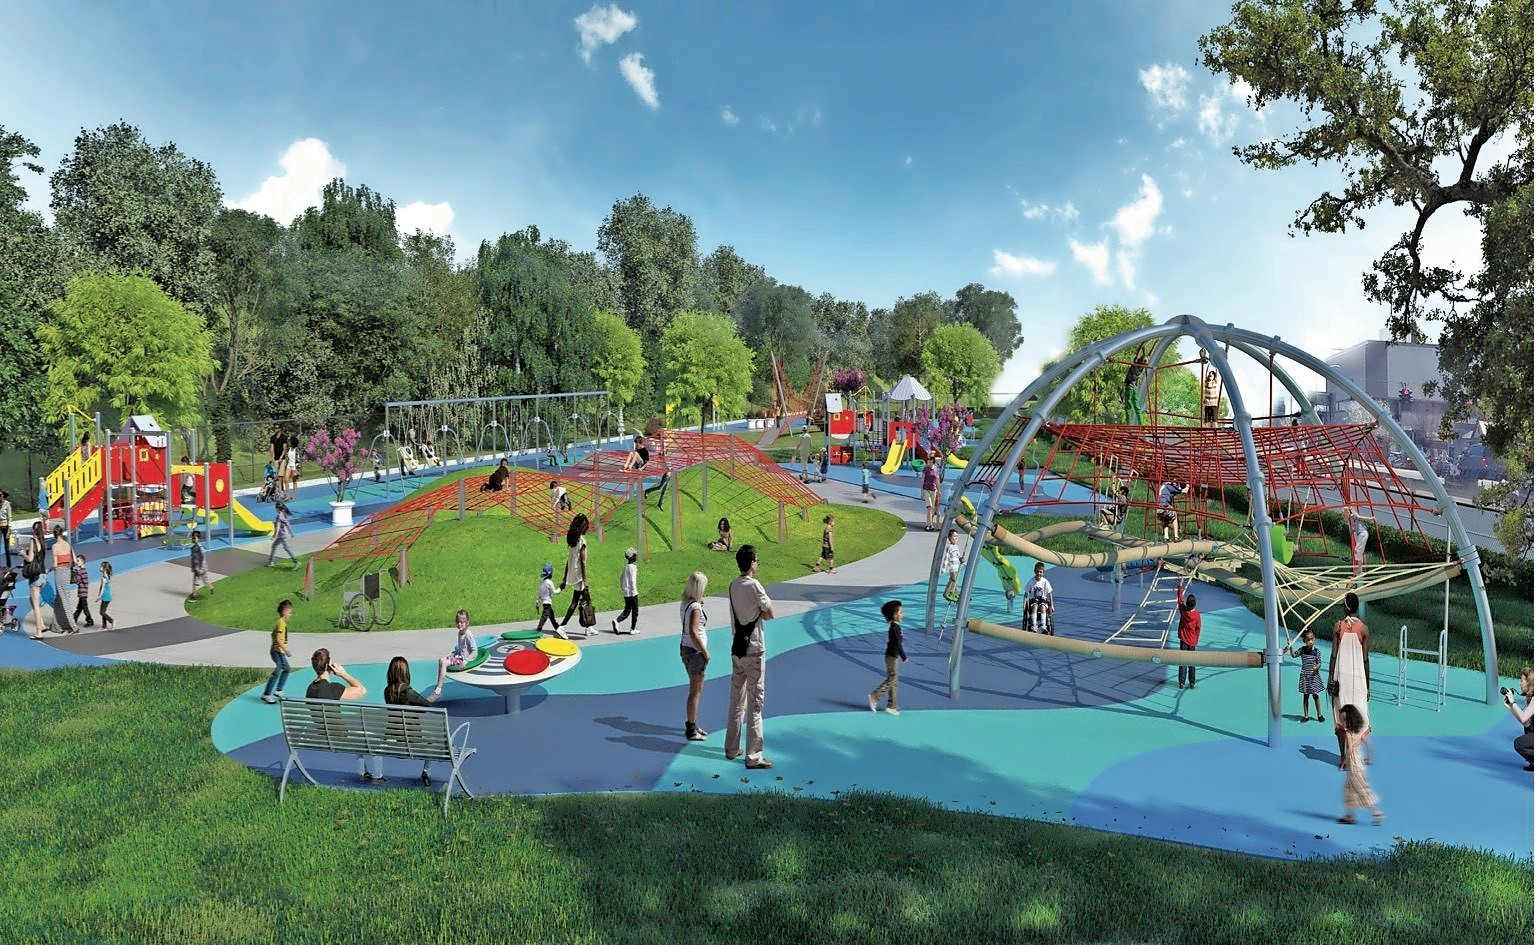 The planned inclusive playground on Hickey Field would feature climbing cargo nets, a suspension bridge, musical equipment and other structures that kids of all ages would enjoy.